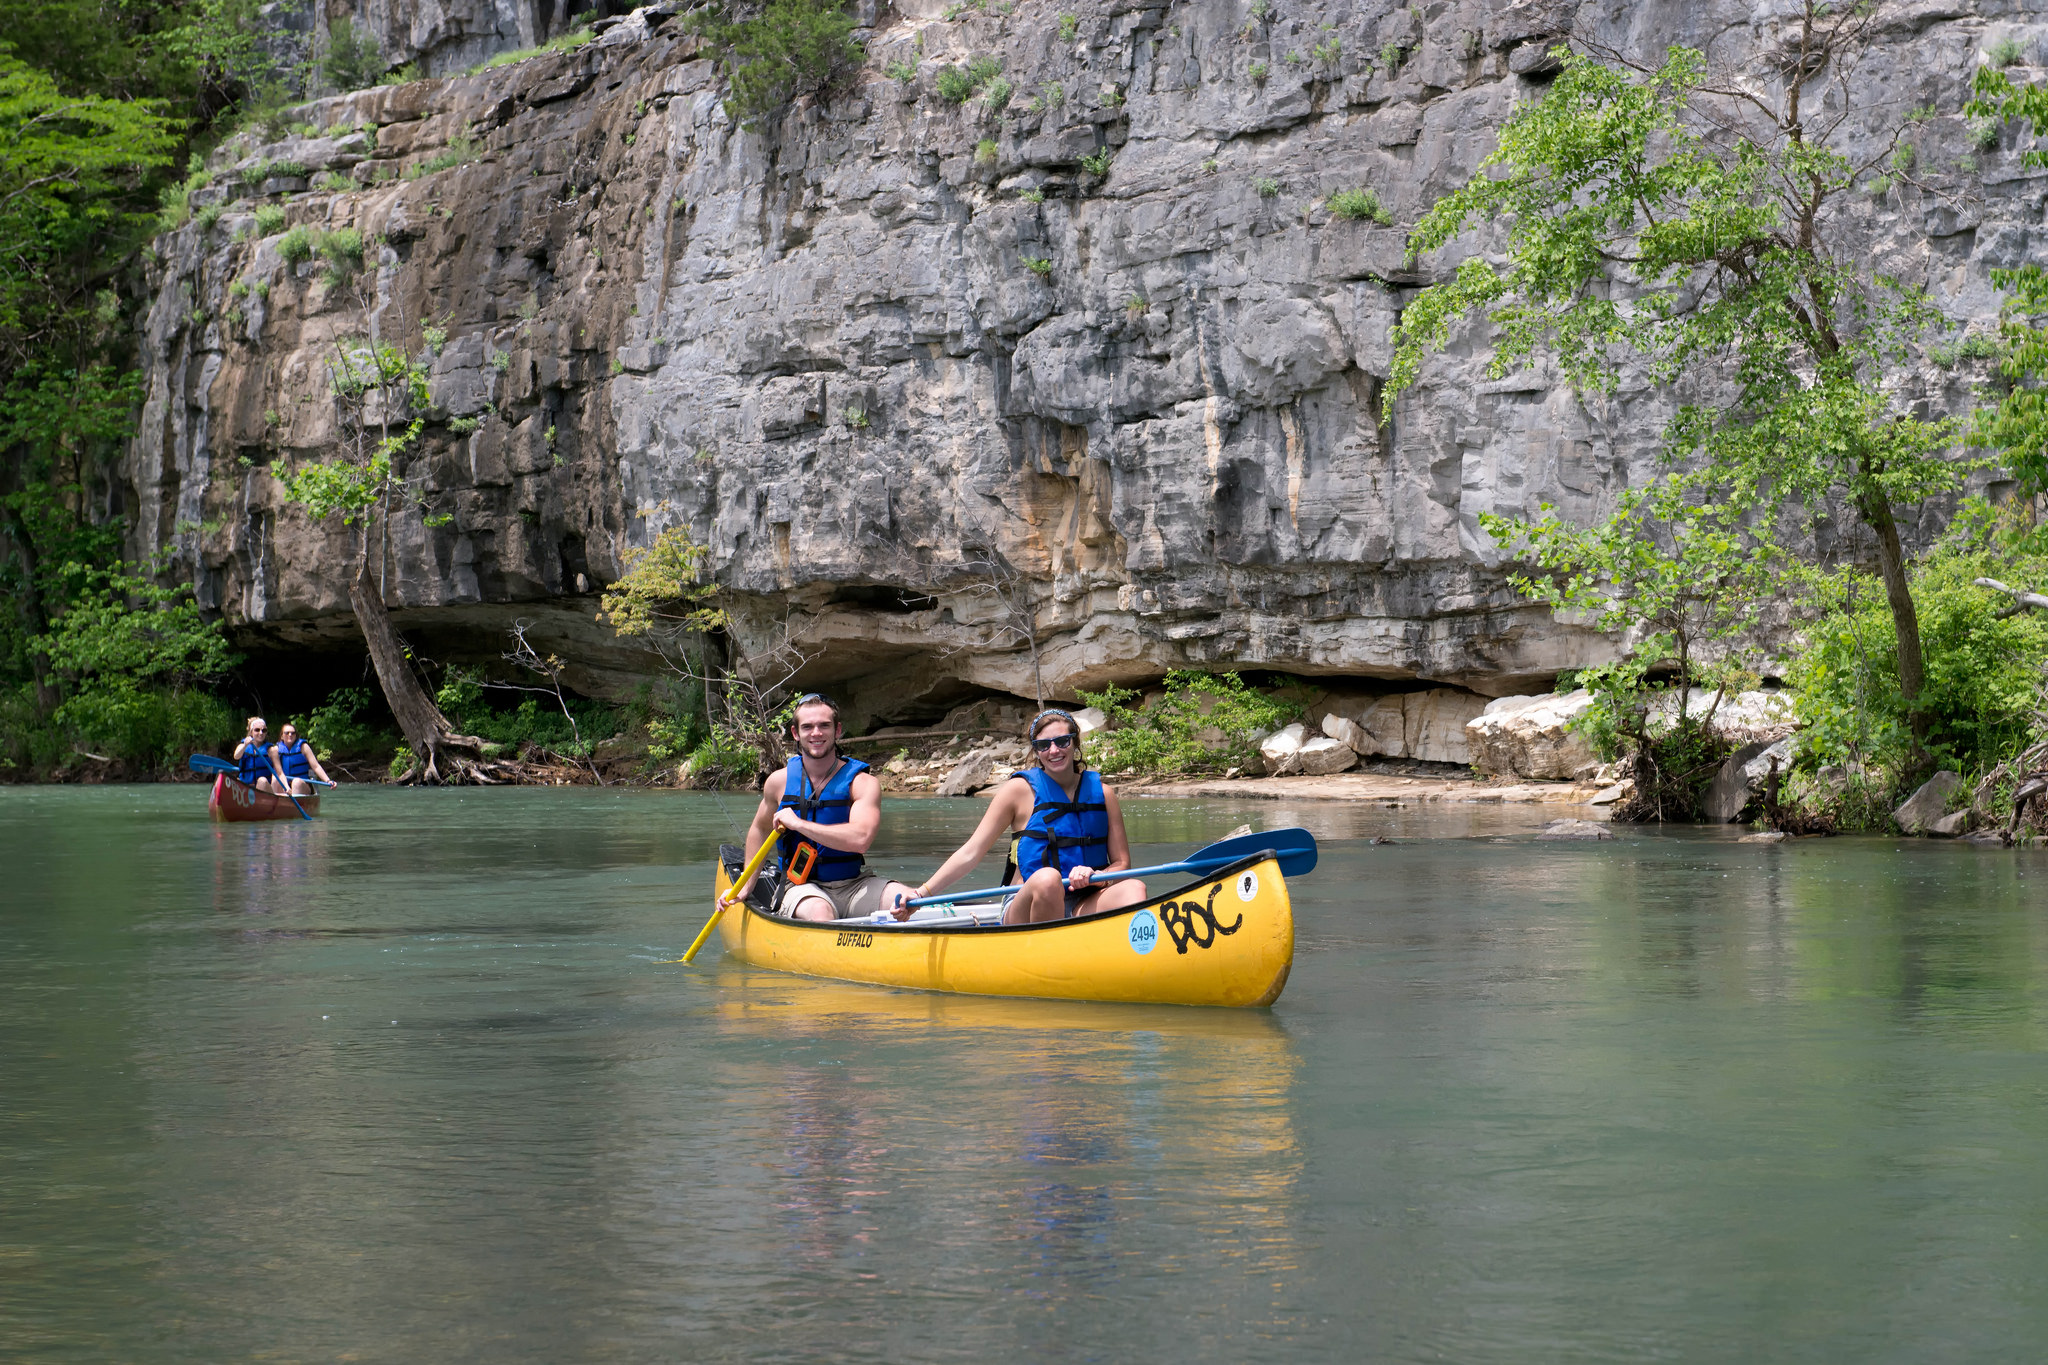 Water, fishing, wildlife combine to make south llano river a gem